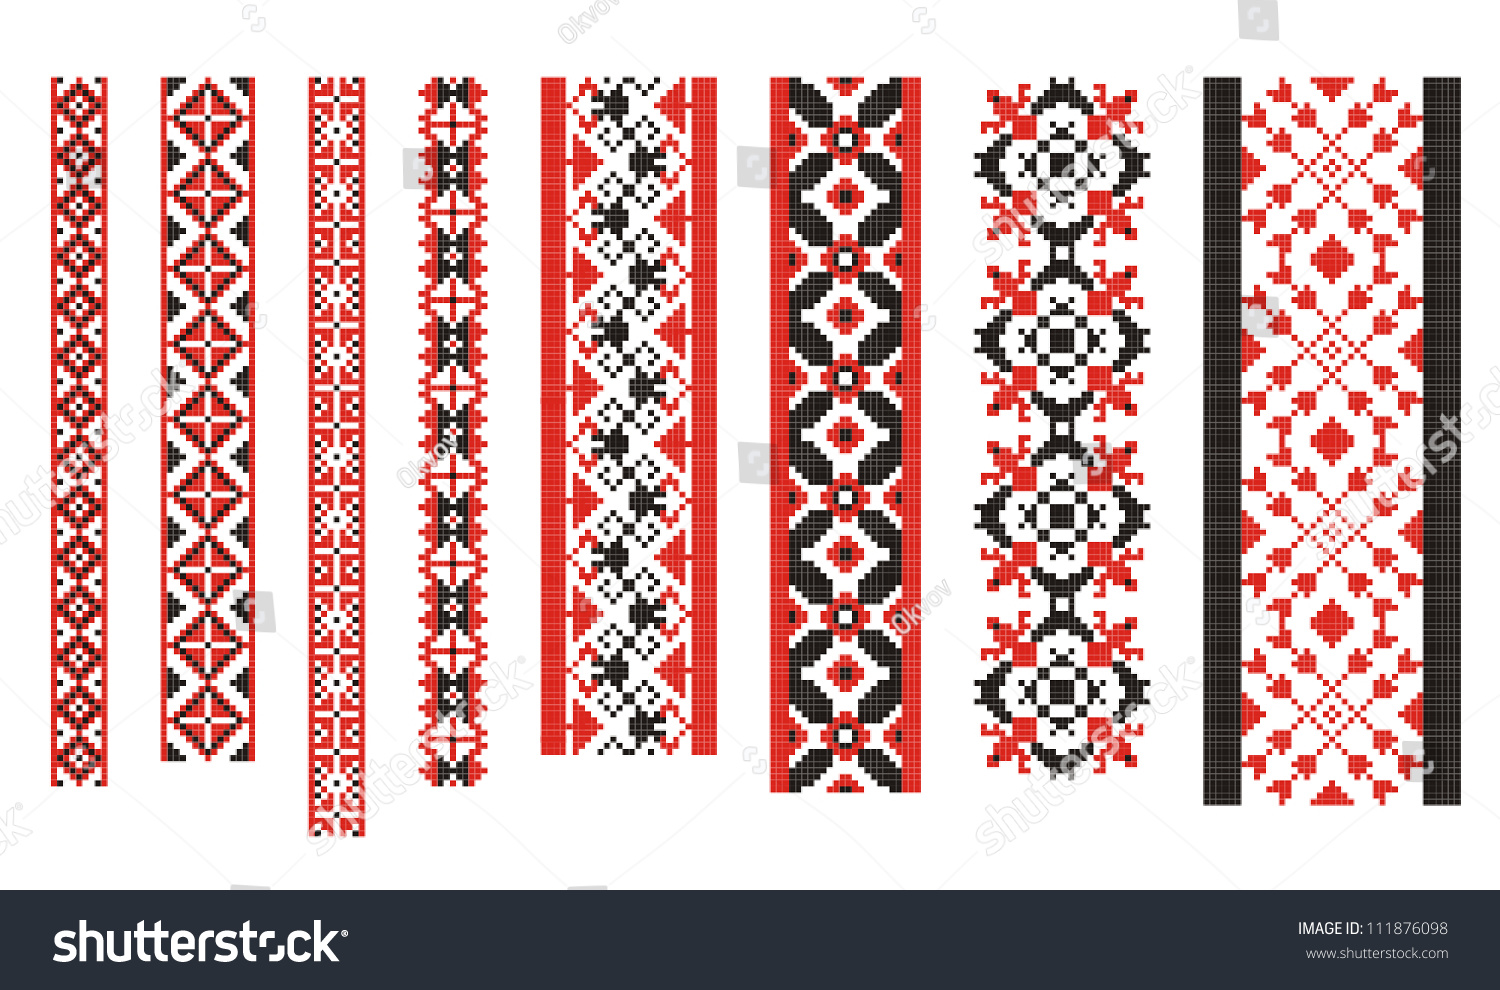 Vector Illustrations Ukrainian Embroidery Stock Vector Royalty Free